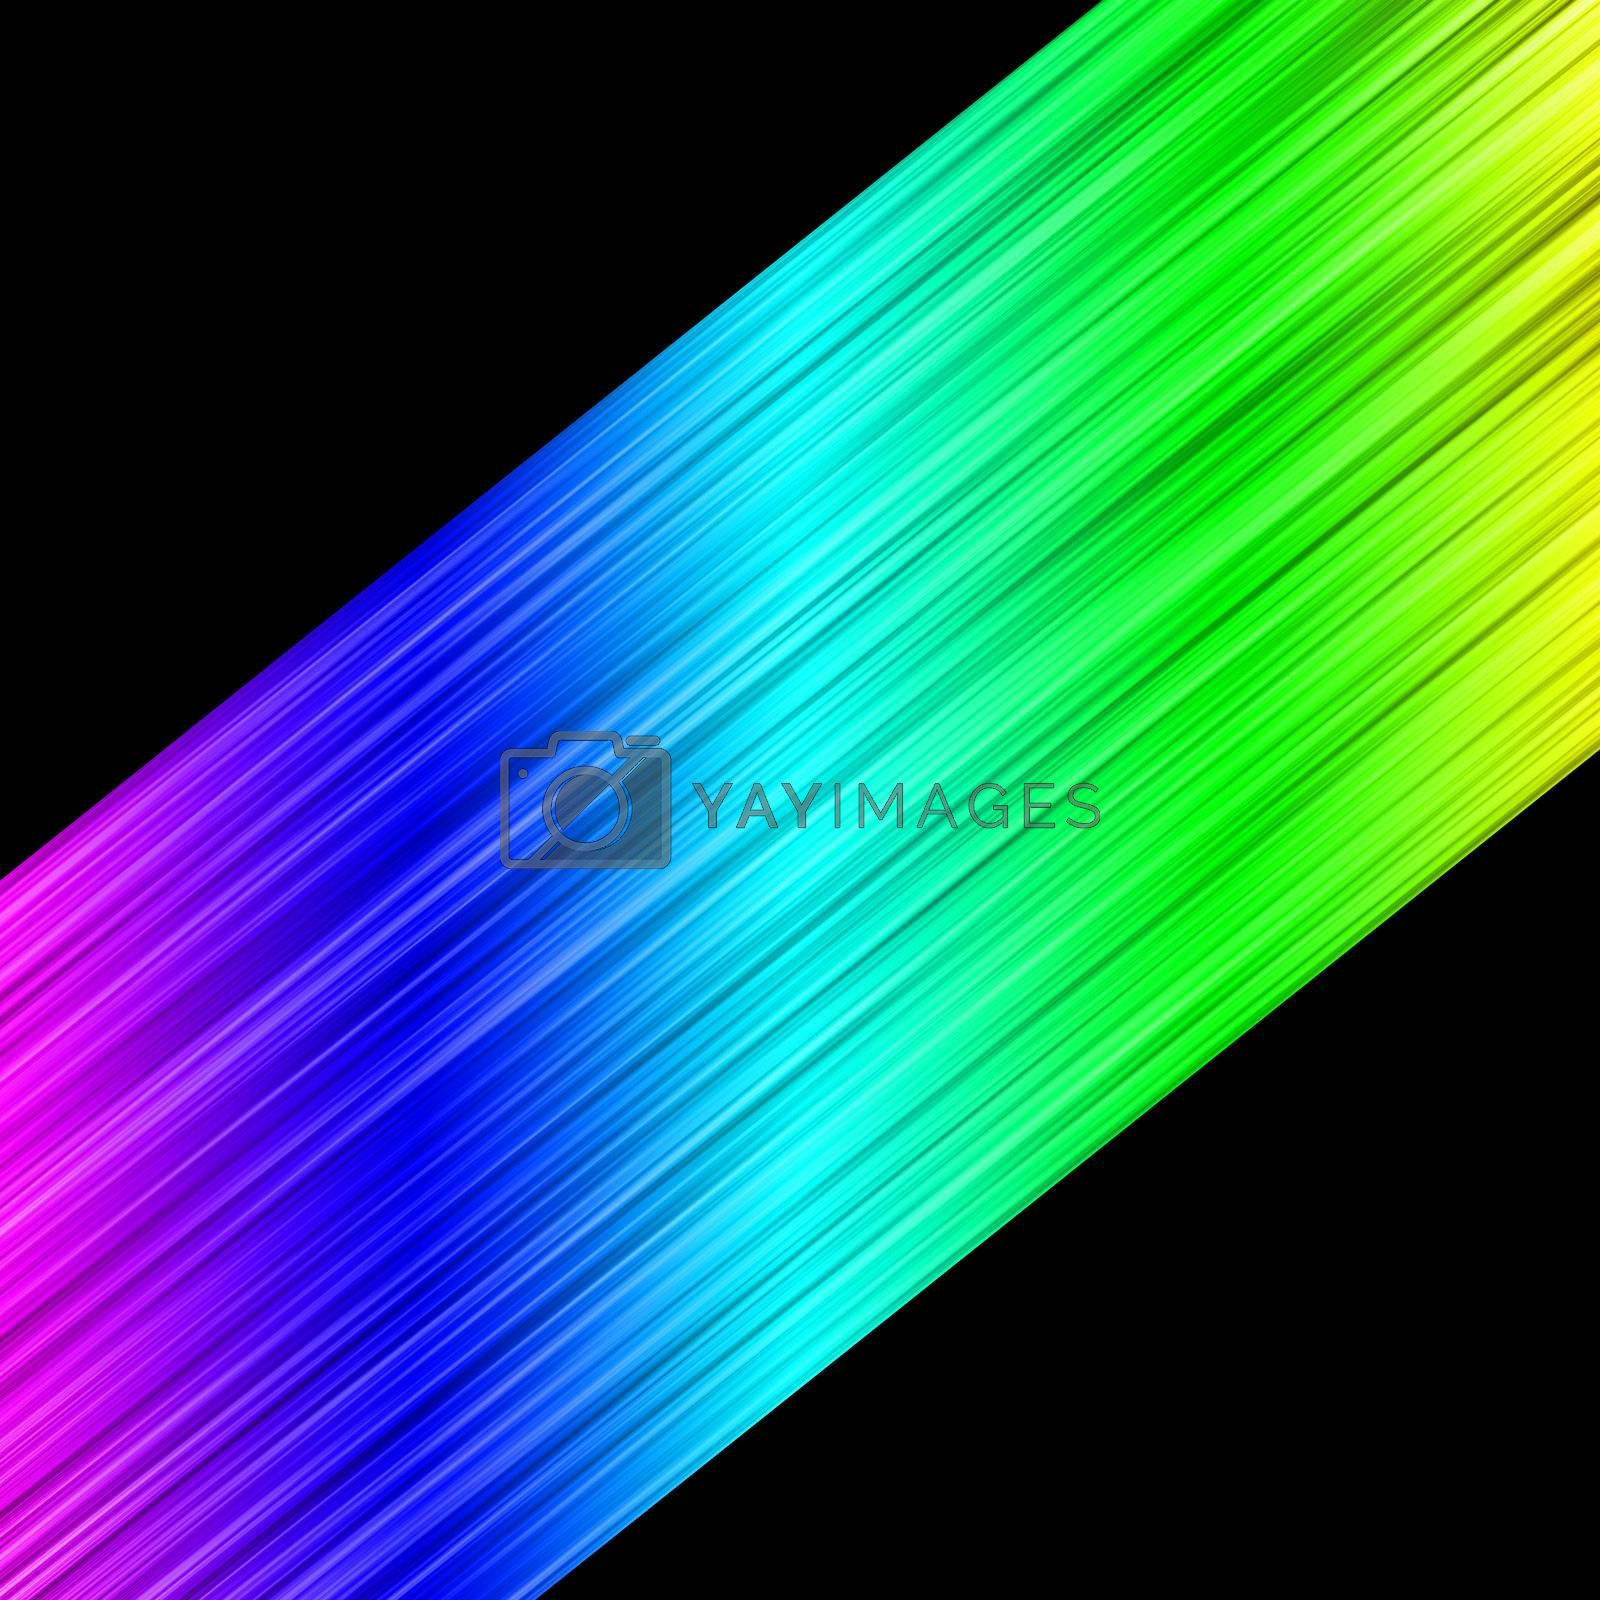 A simple abstract color based line pattern background.